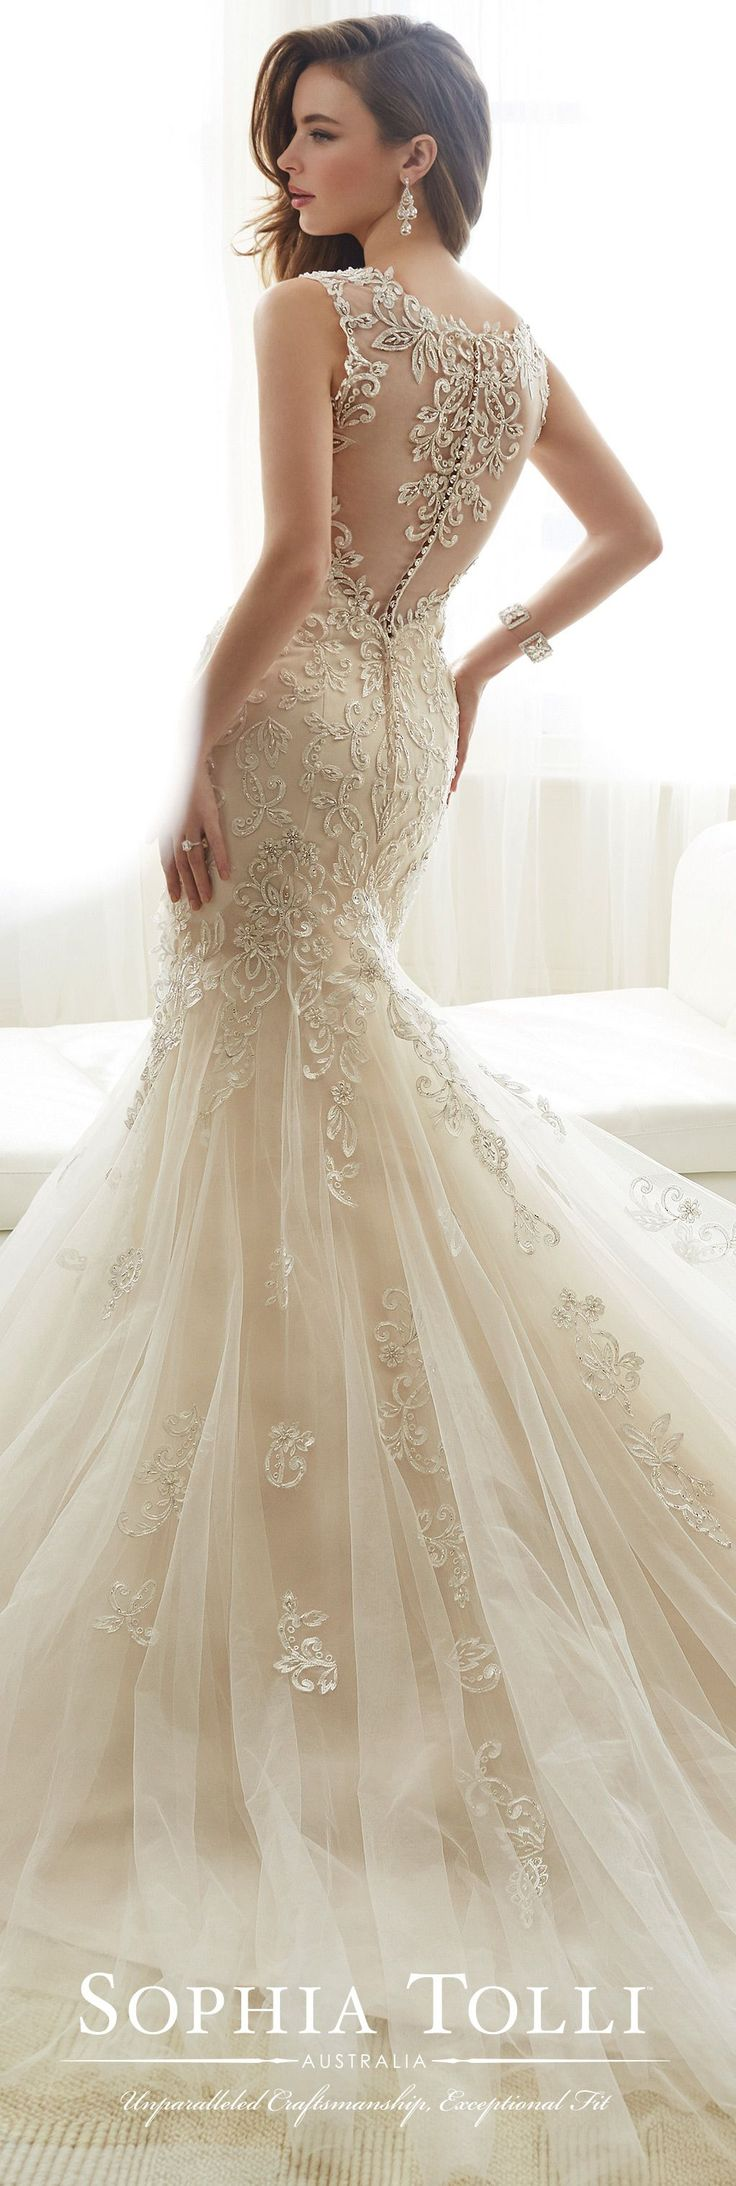 Sophia Tolli Spring 2017 Wedding Gown Collection - Style No. Y11722 Amie - sleeveless tulle and lace fit and flare wedding dress with illusion back